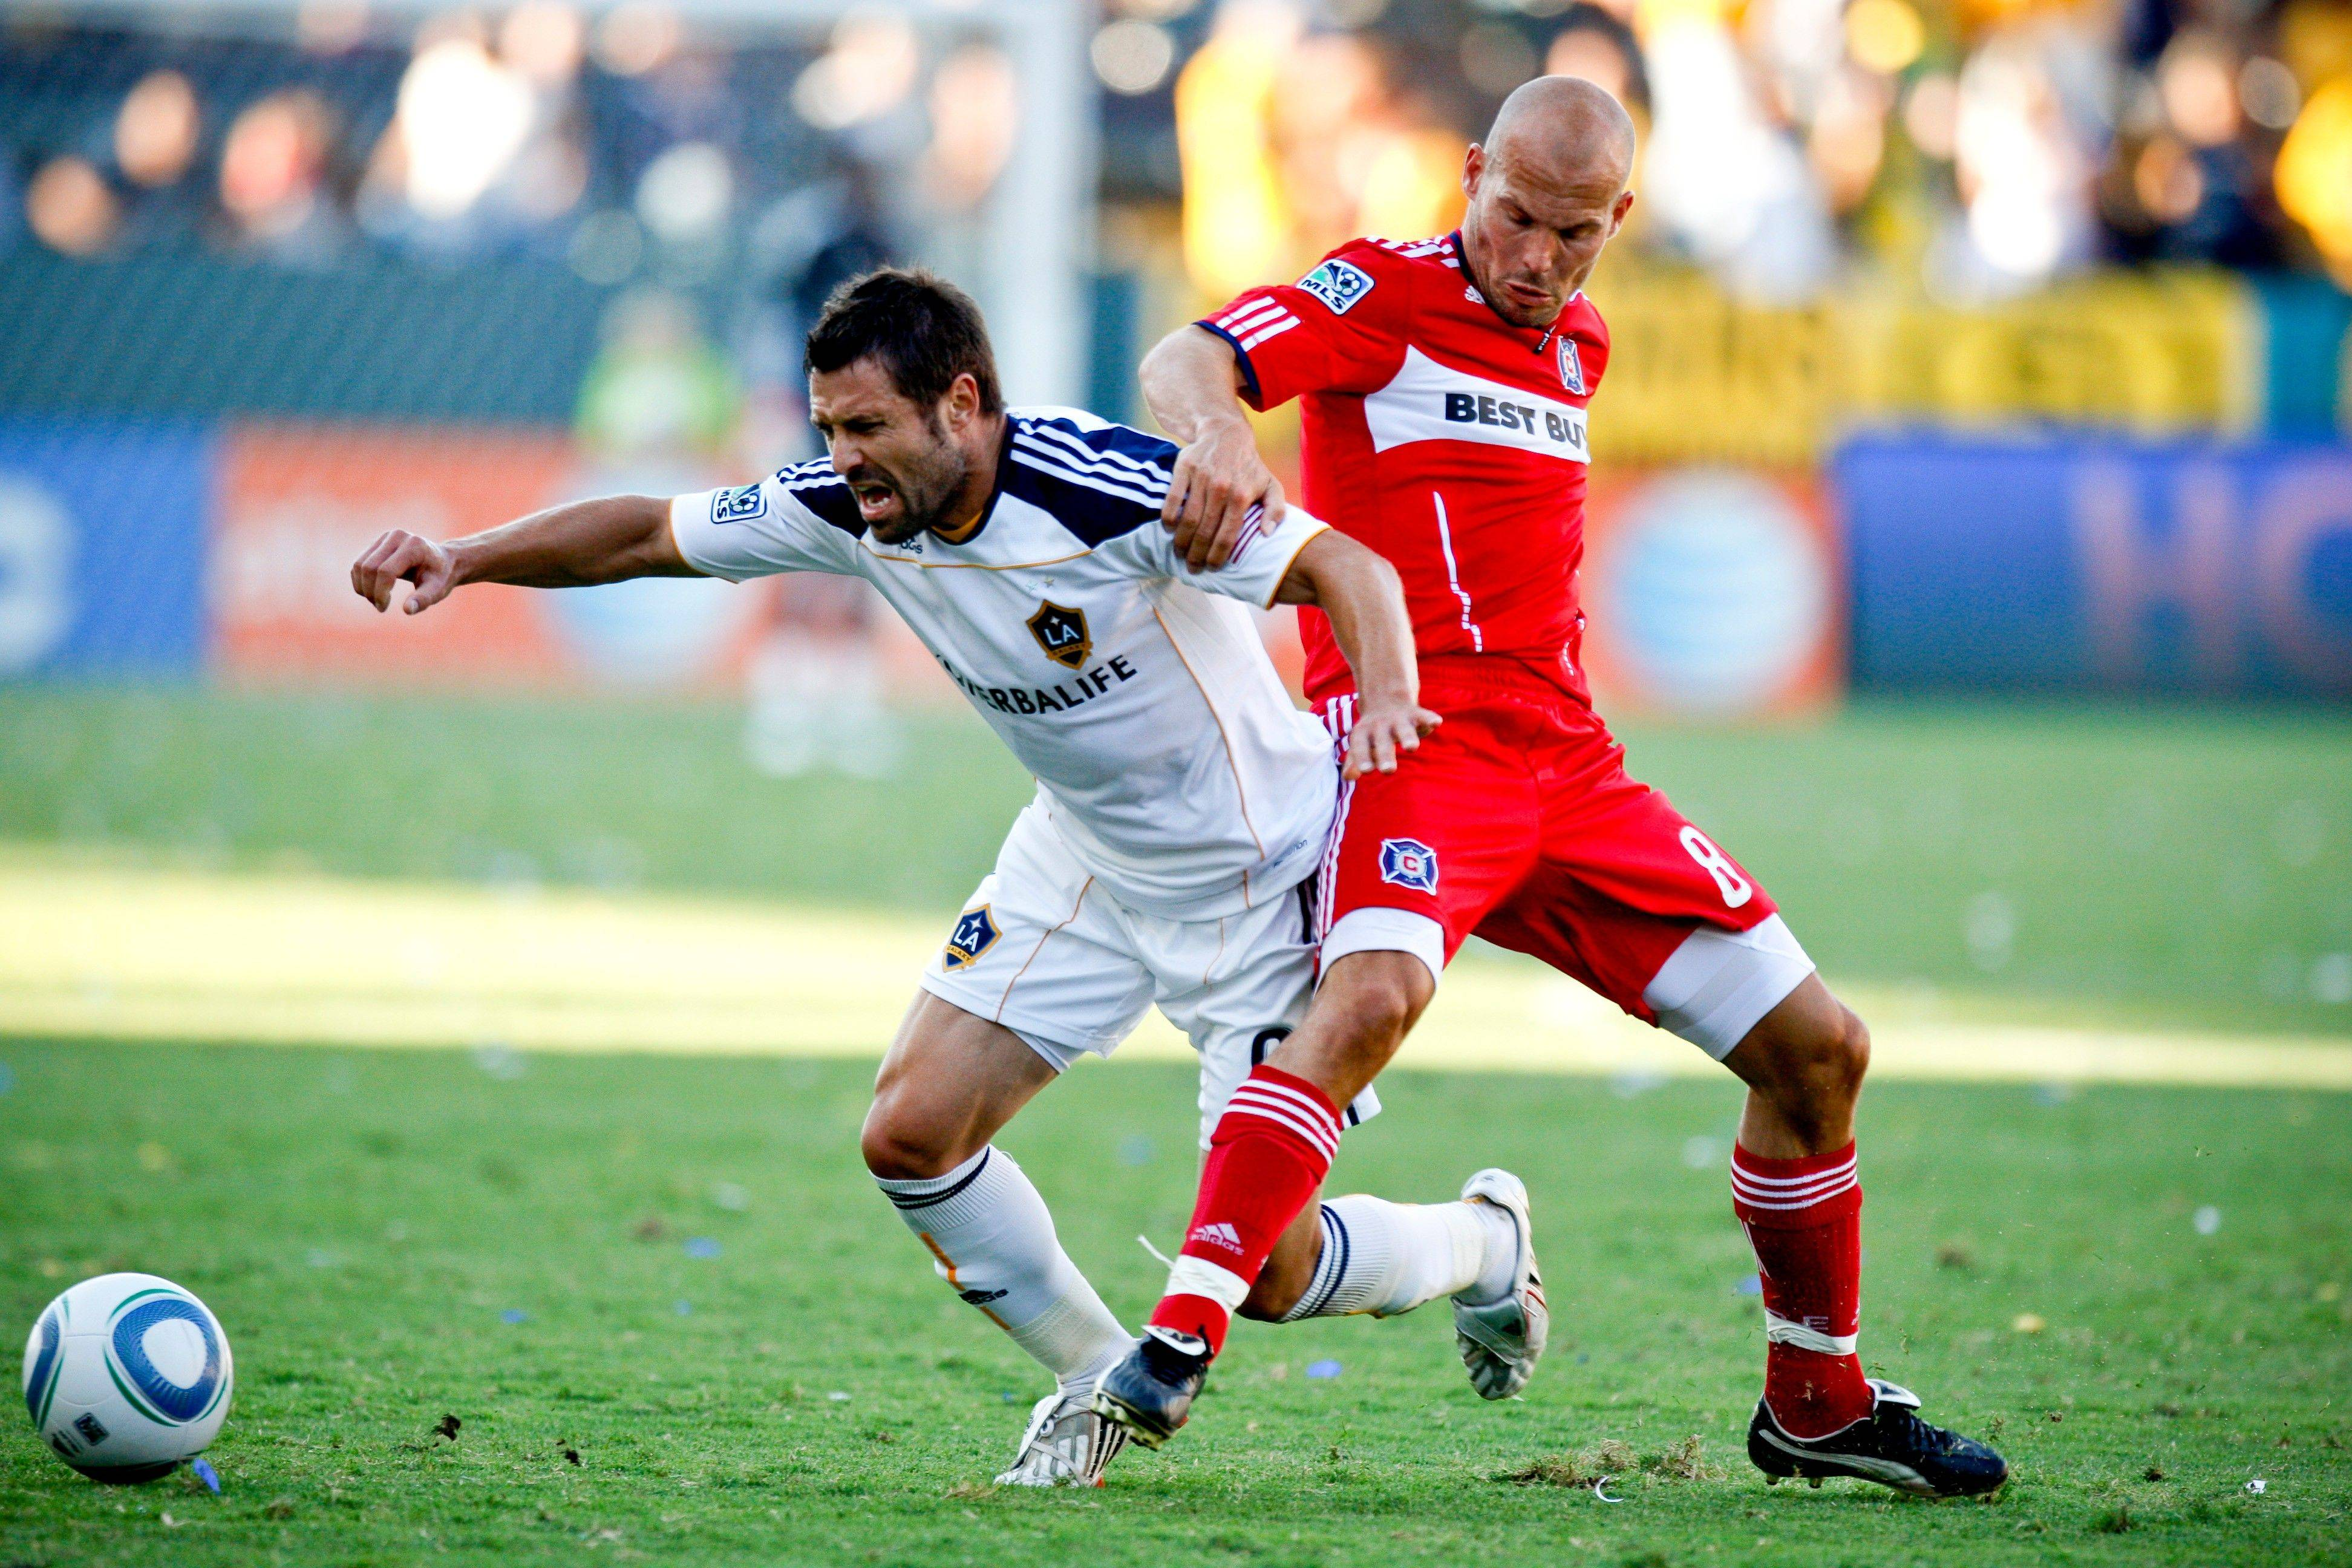 Fire midfielder Freddie Ljungberg, right, is gone after less than a full season and has signed to play in Europe. He represents just one of many departures the local MLS franchise has to fill for next season.